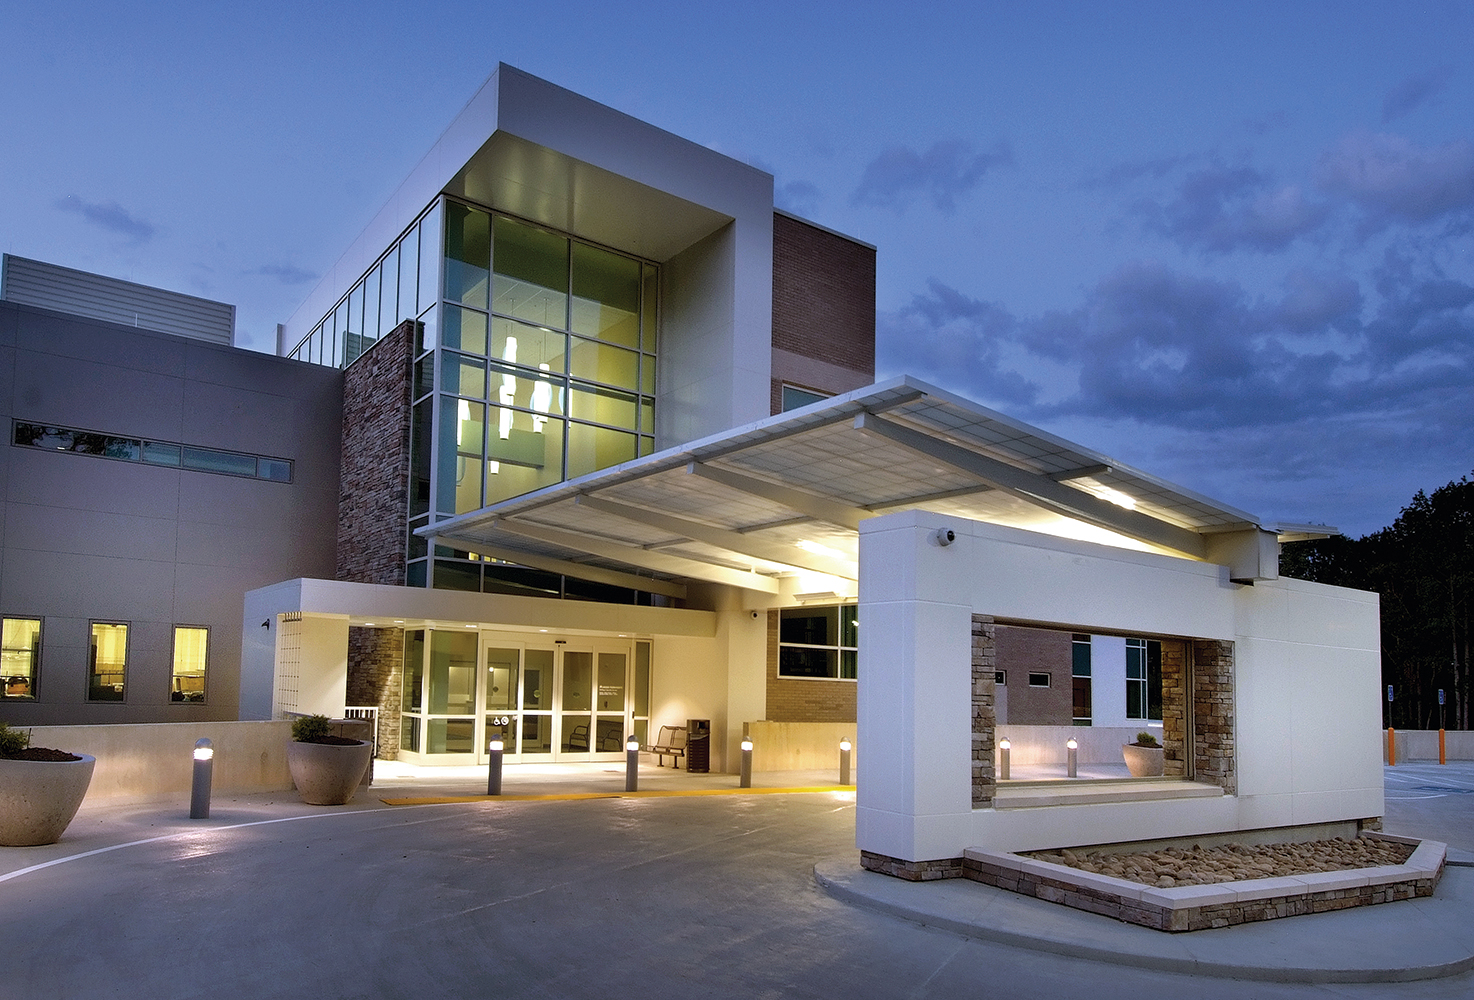 Sequence pendants are visible from the exterior of a windowed lobby for open, attractive healthcare design.